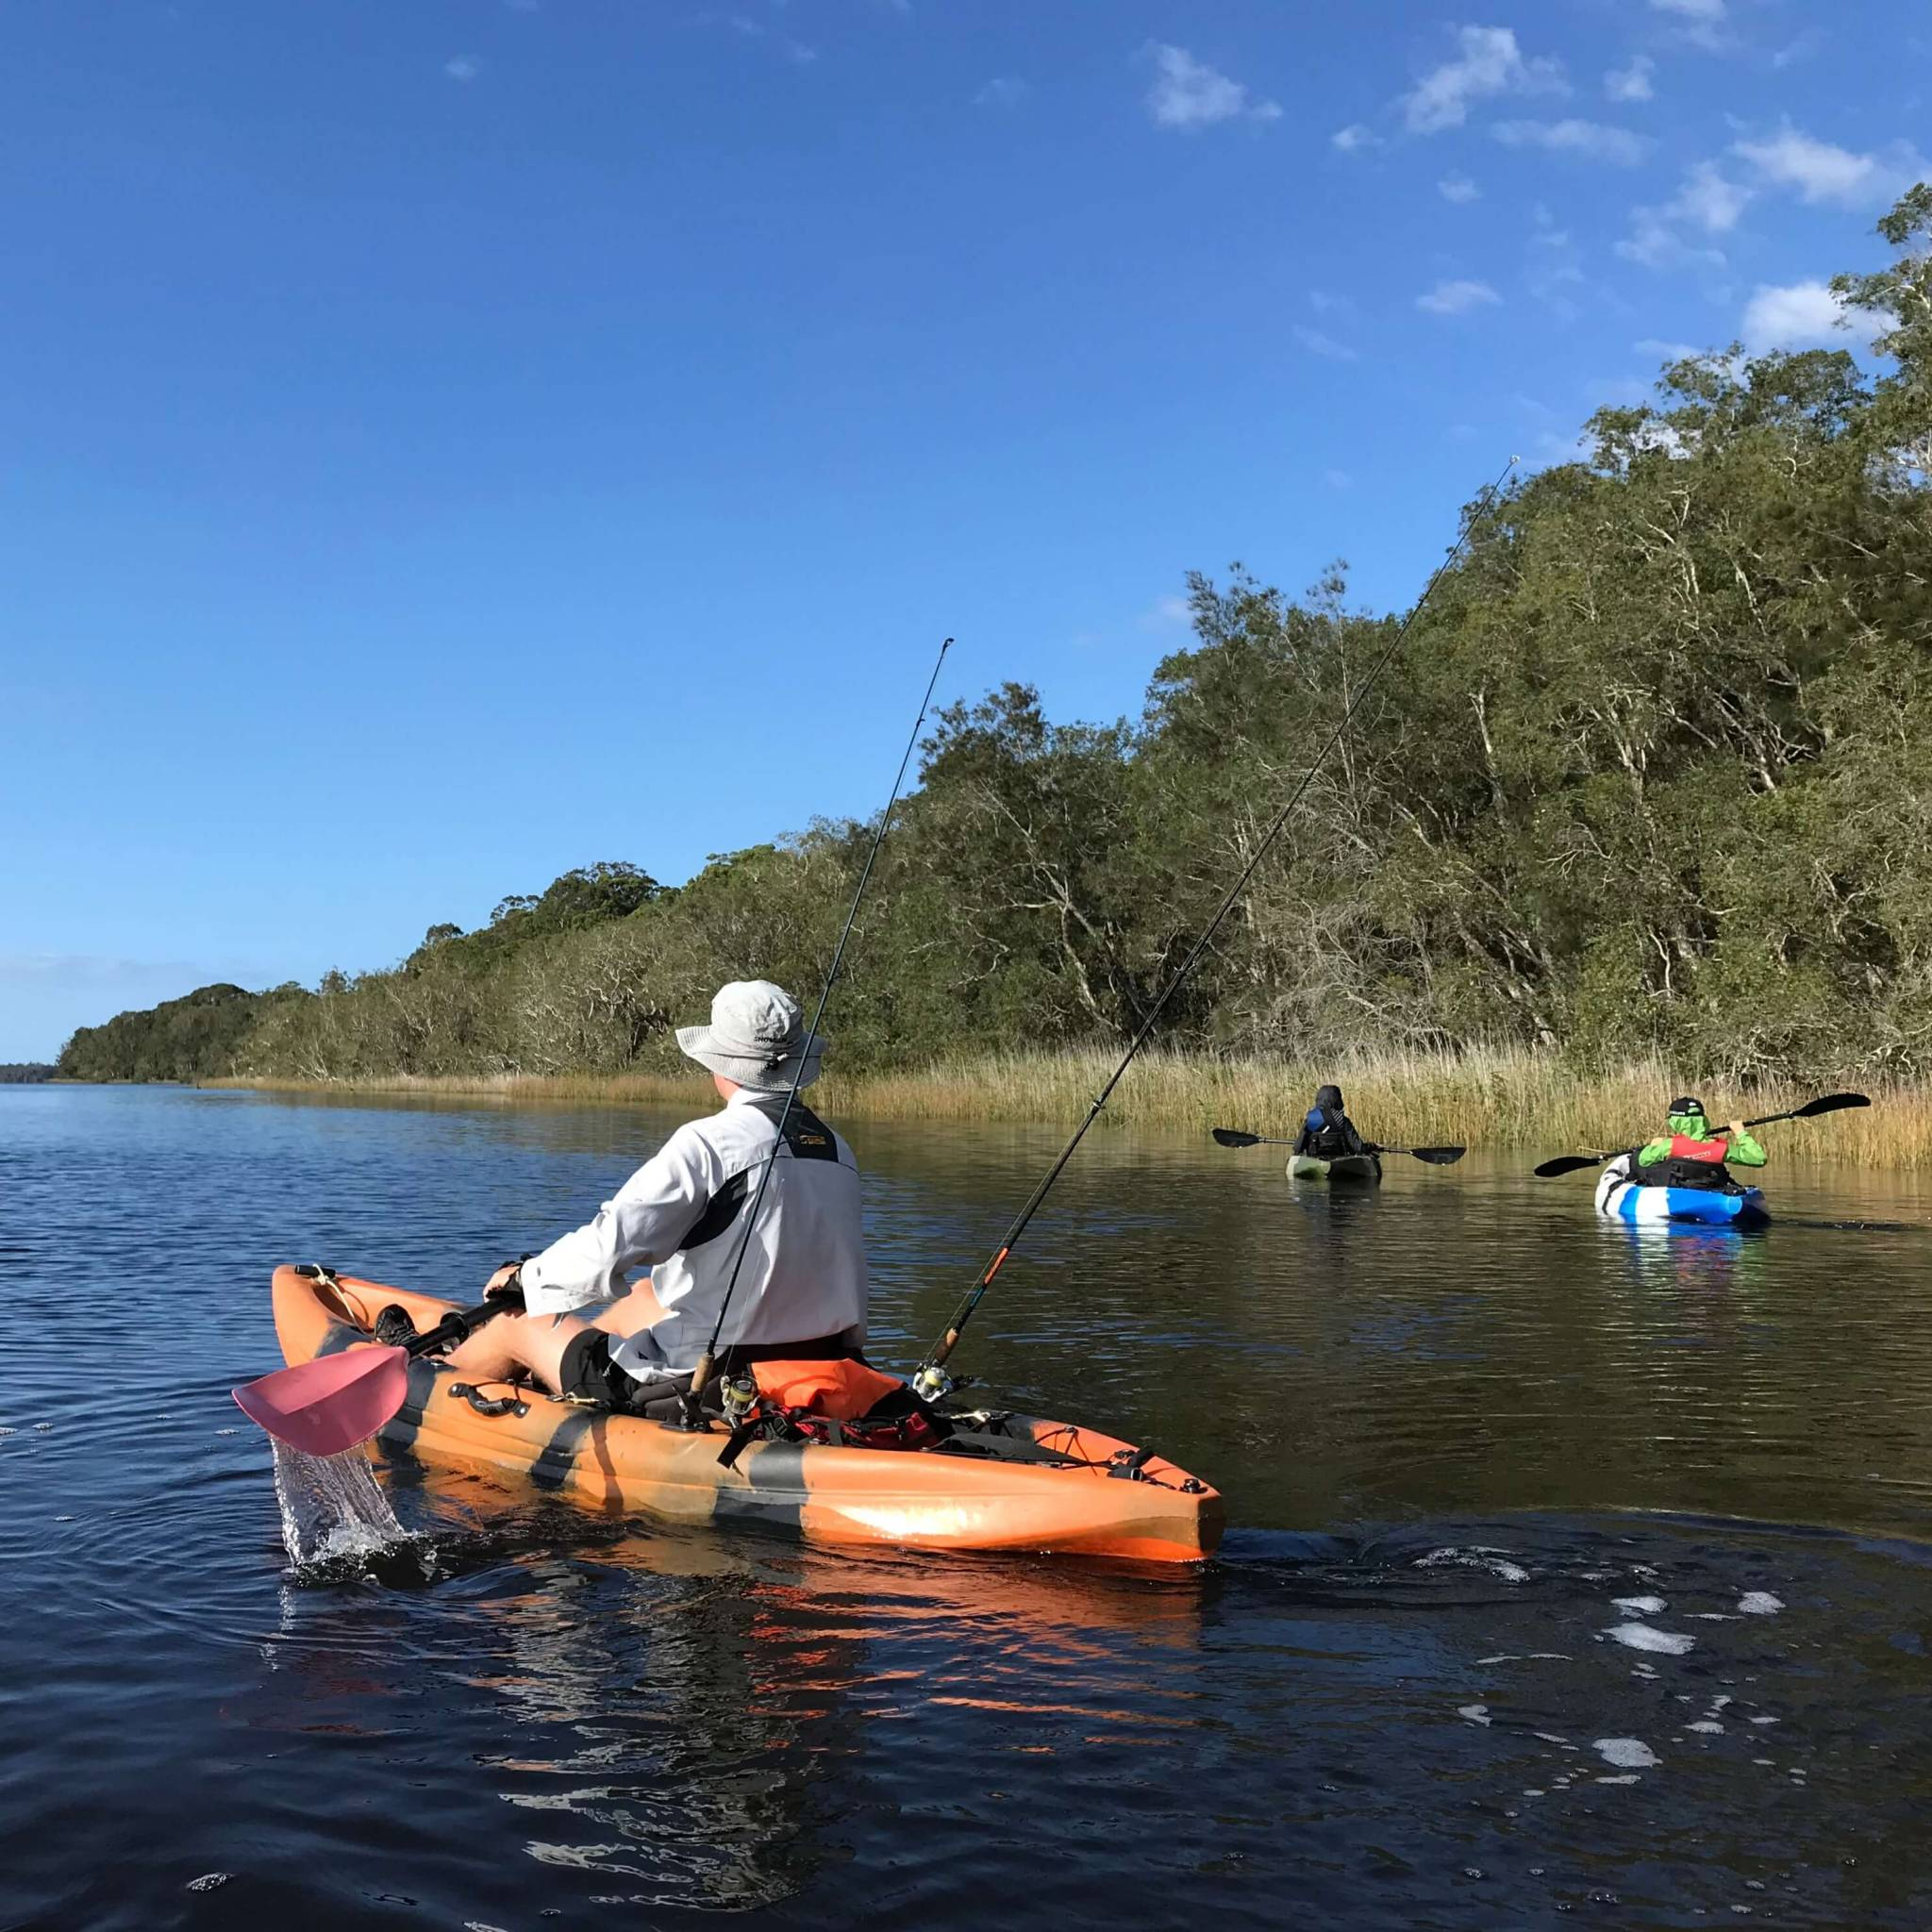 Hop in a Kayak to Relax and Explore the Outdoors